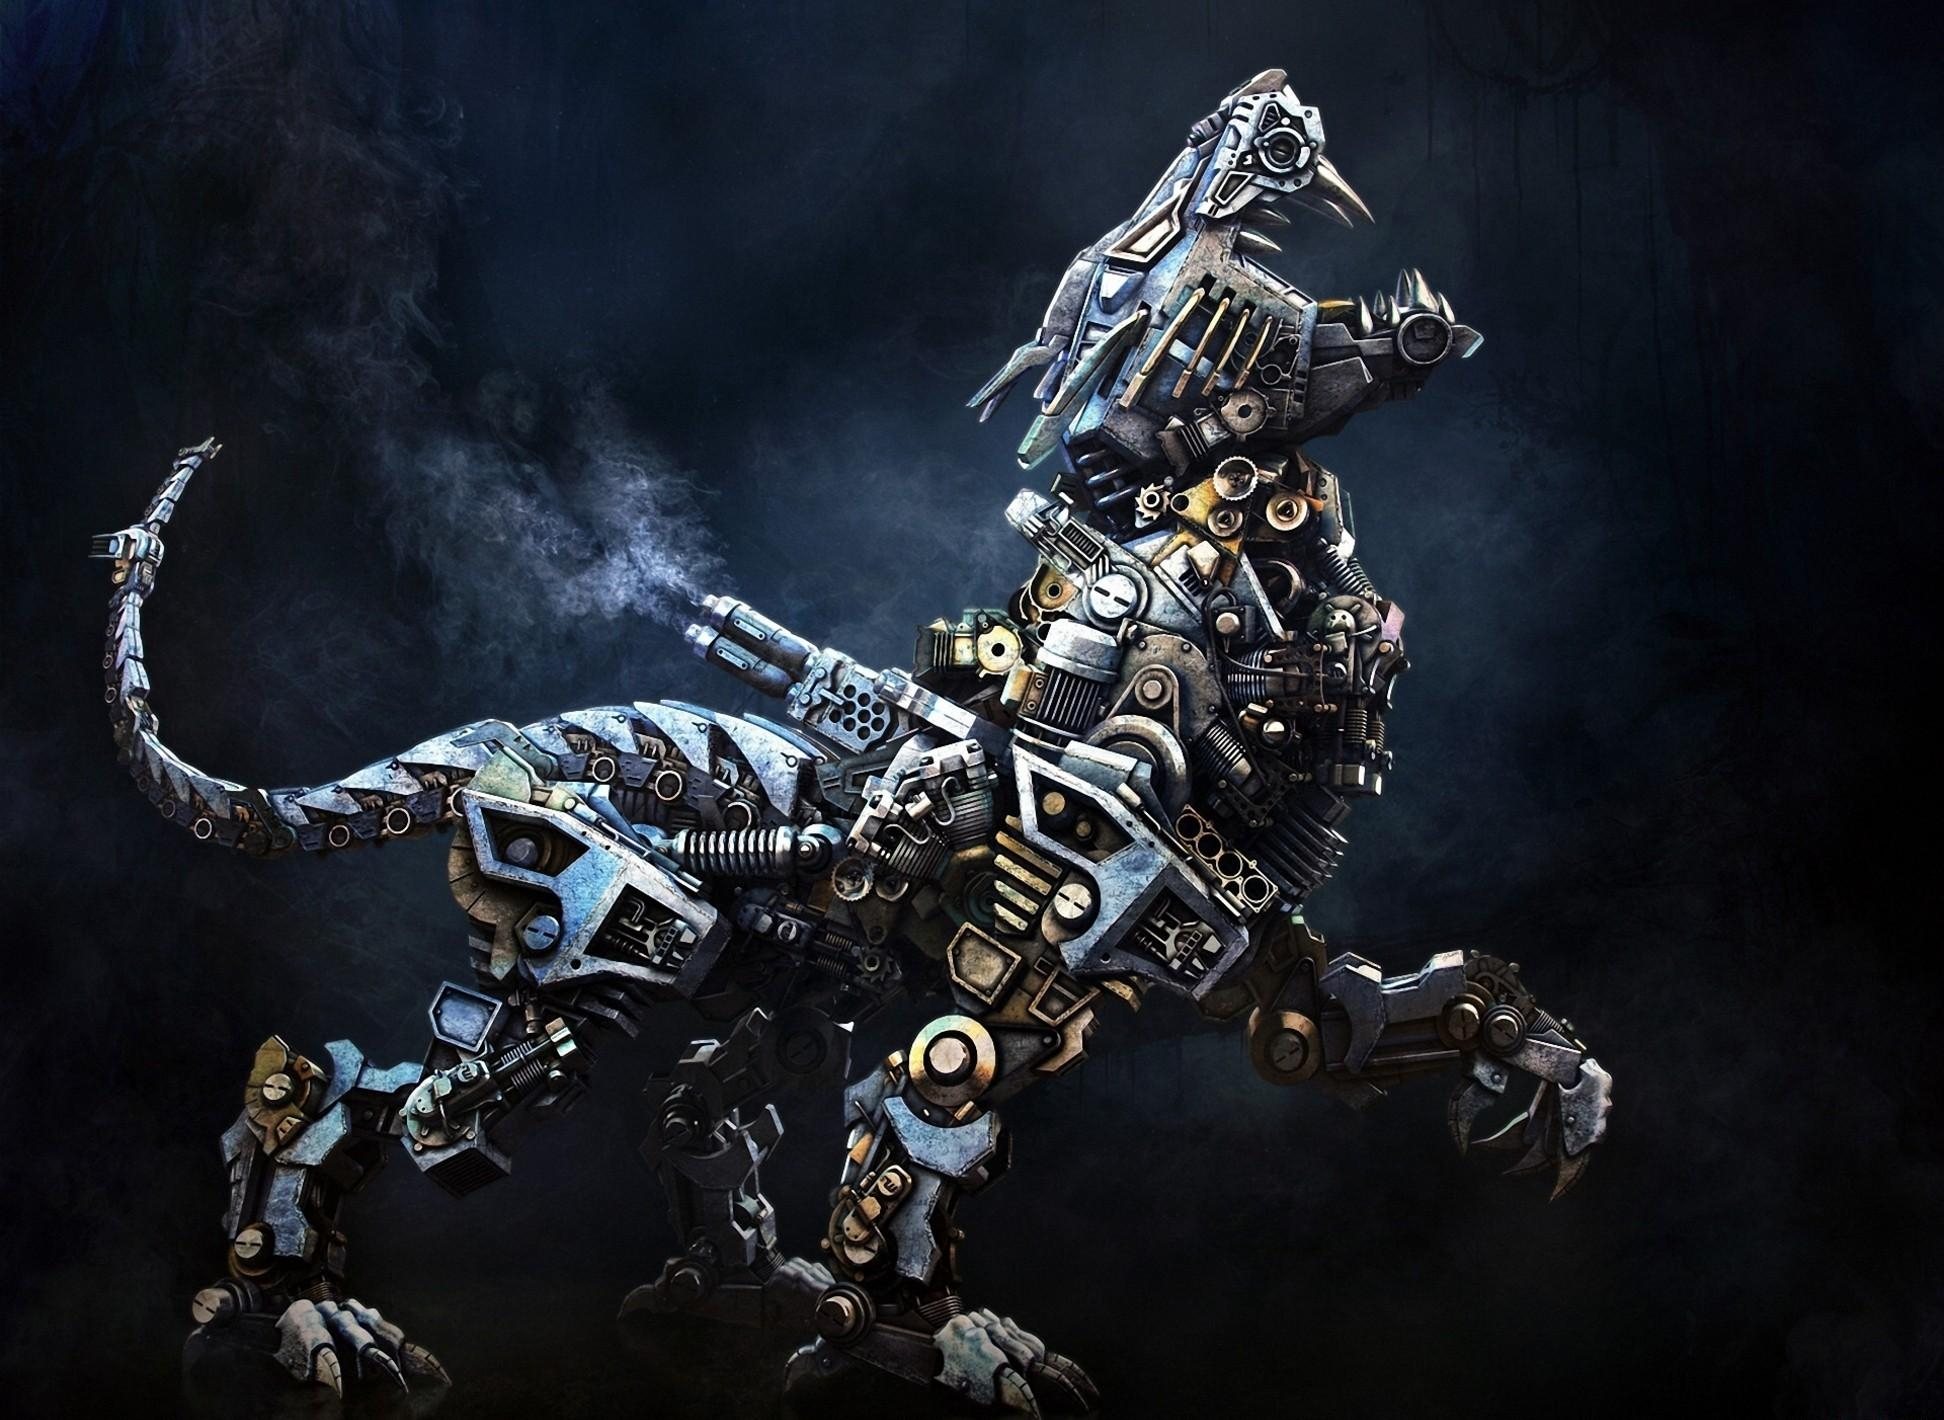 135127 download wallpaper Fantasy, Cyborg, Robot, Animal, Iron screensavers and pictures for free